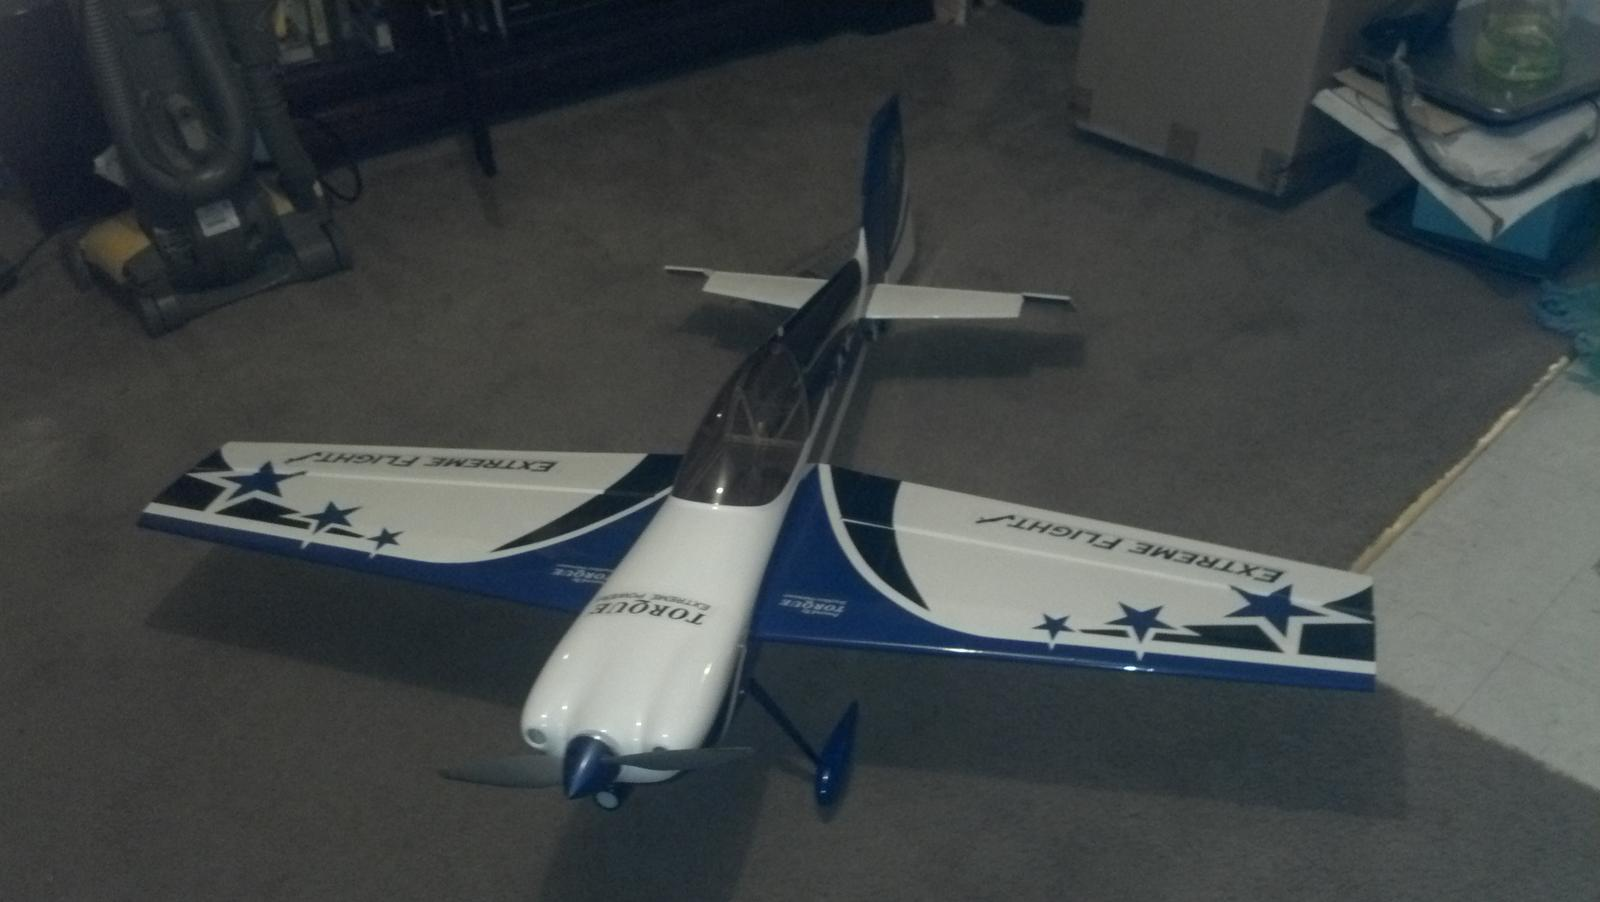 My first Extreme Flight build I got last week. Build was simple.